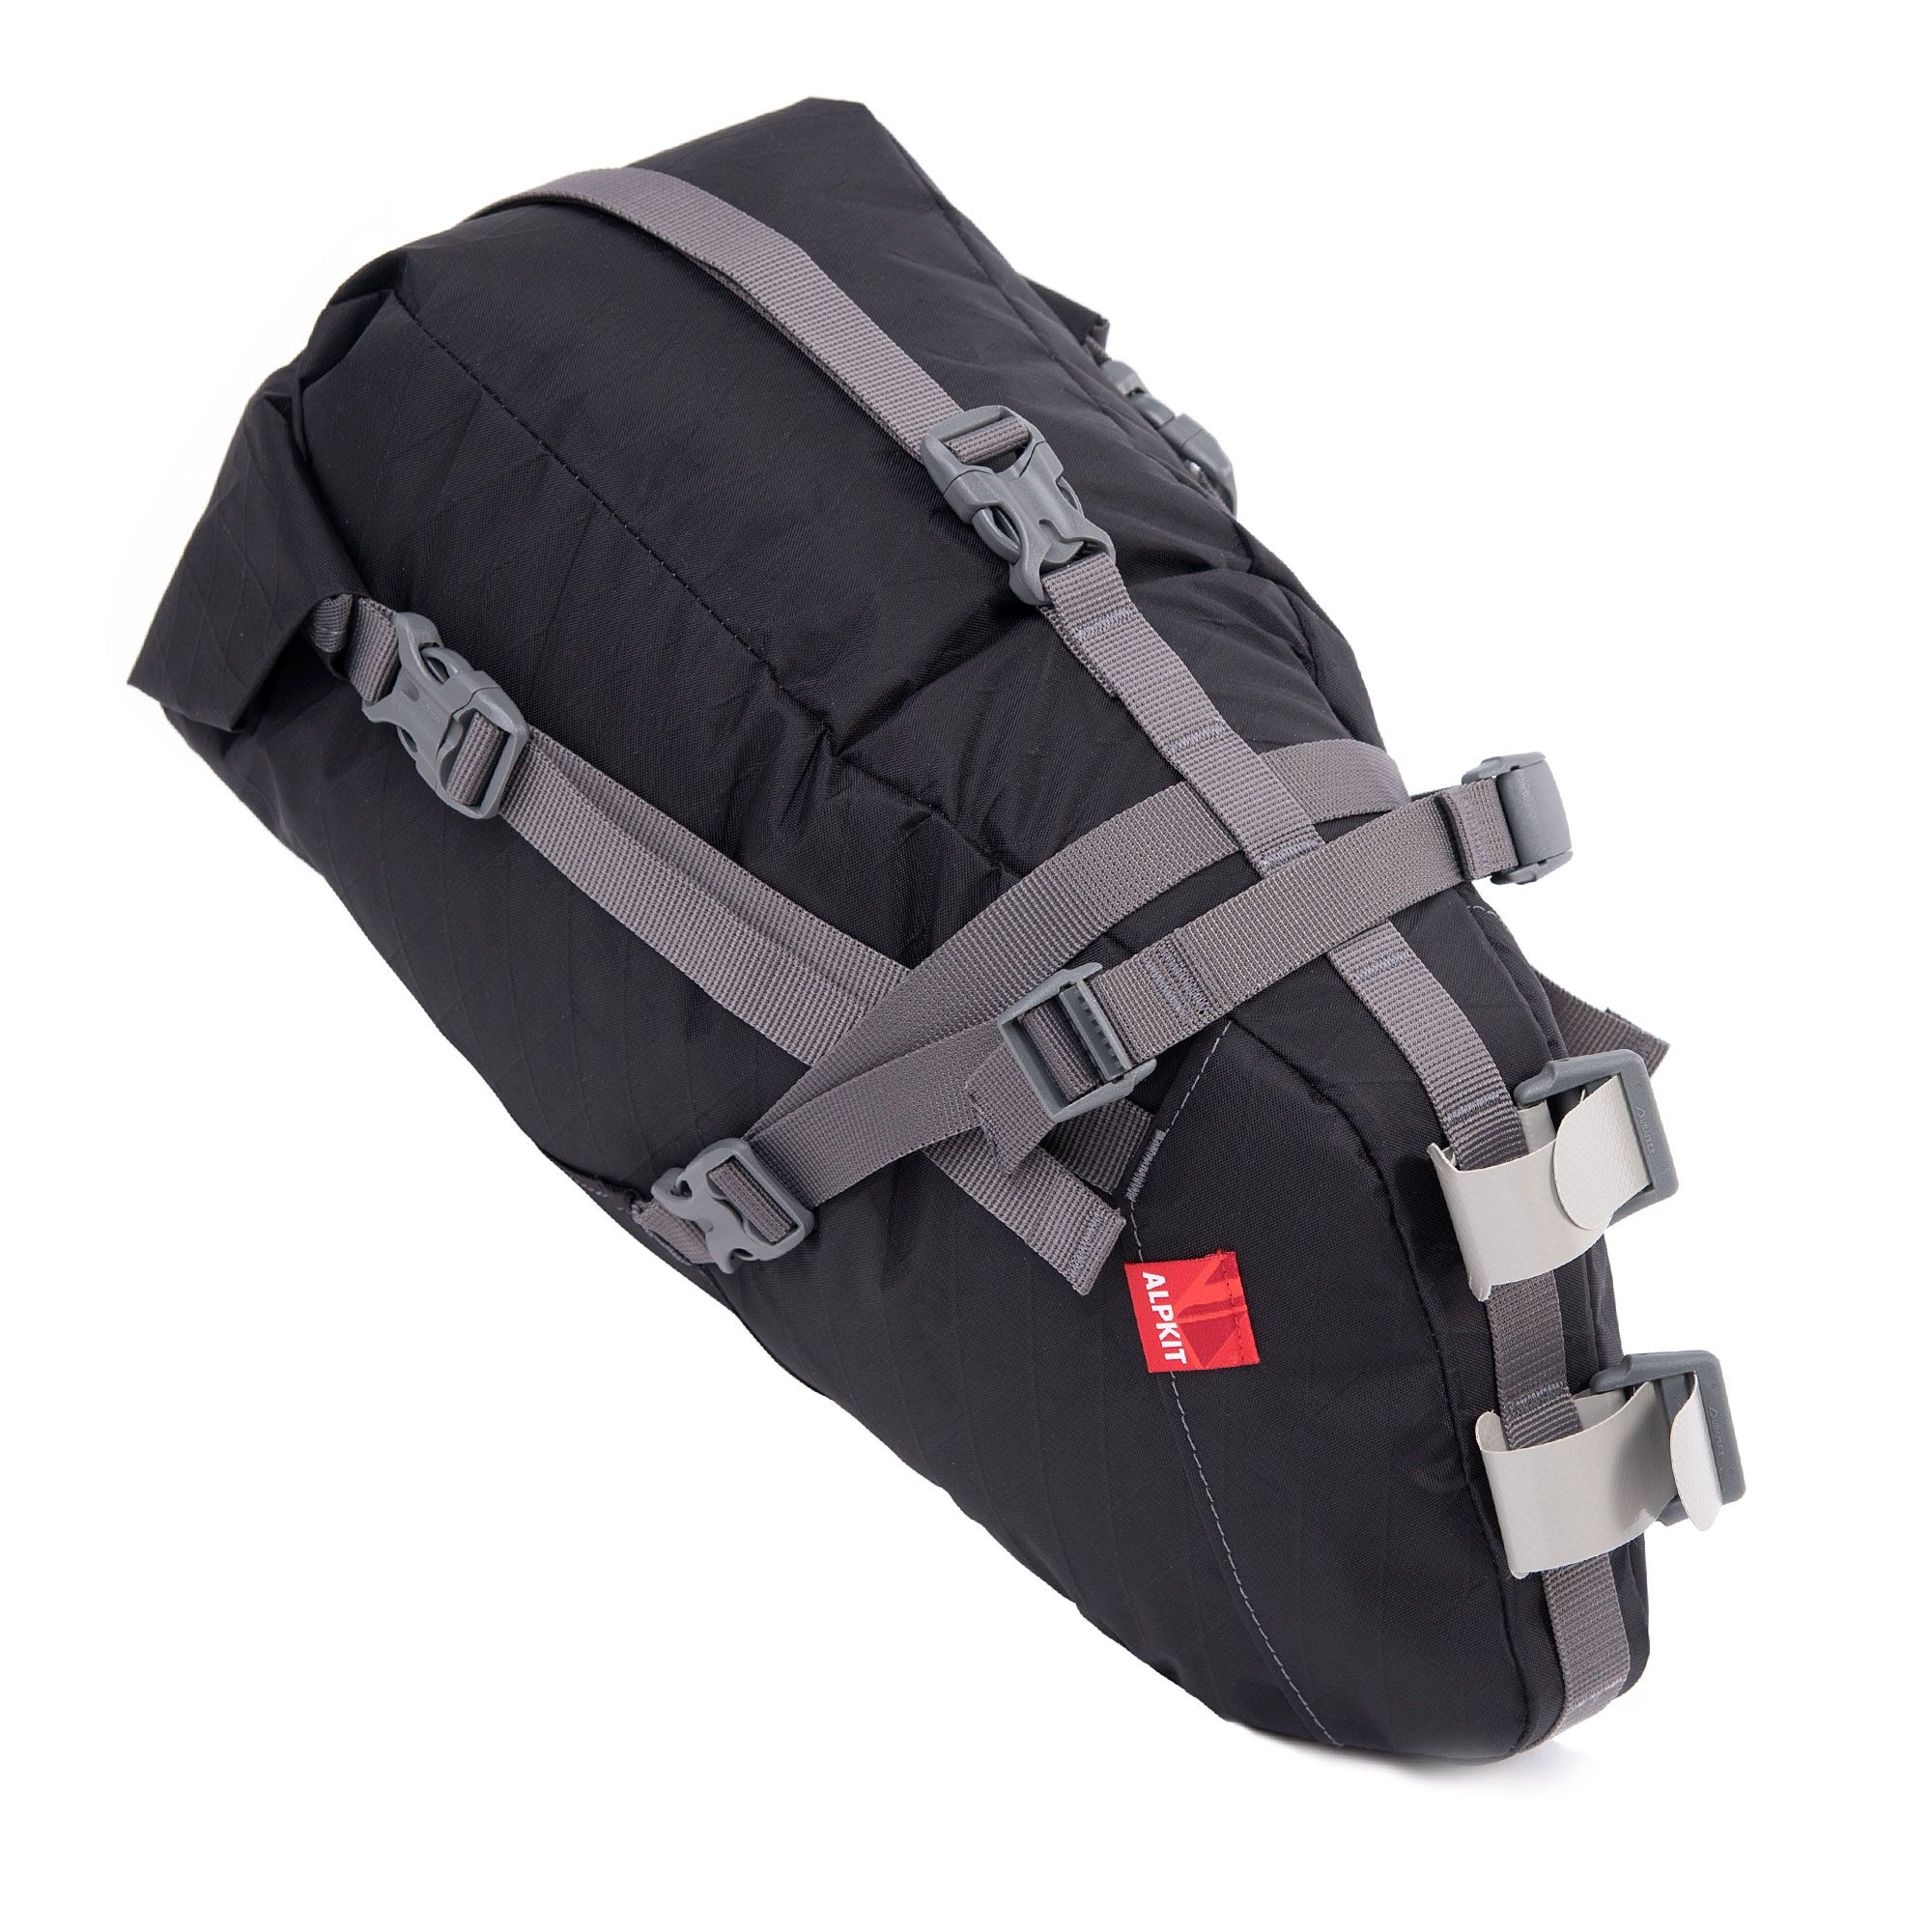 Koala seat pack for bikepacking | Cycling | Pinterest